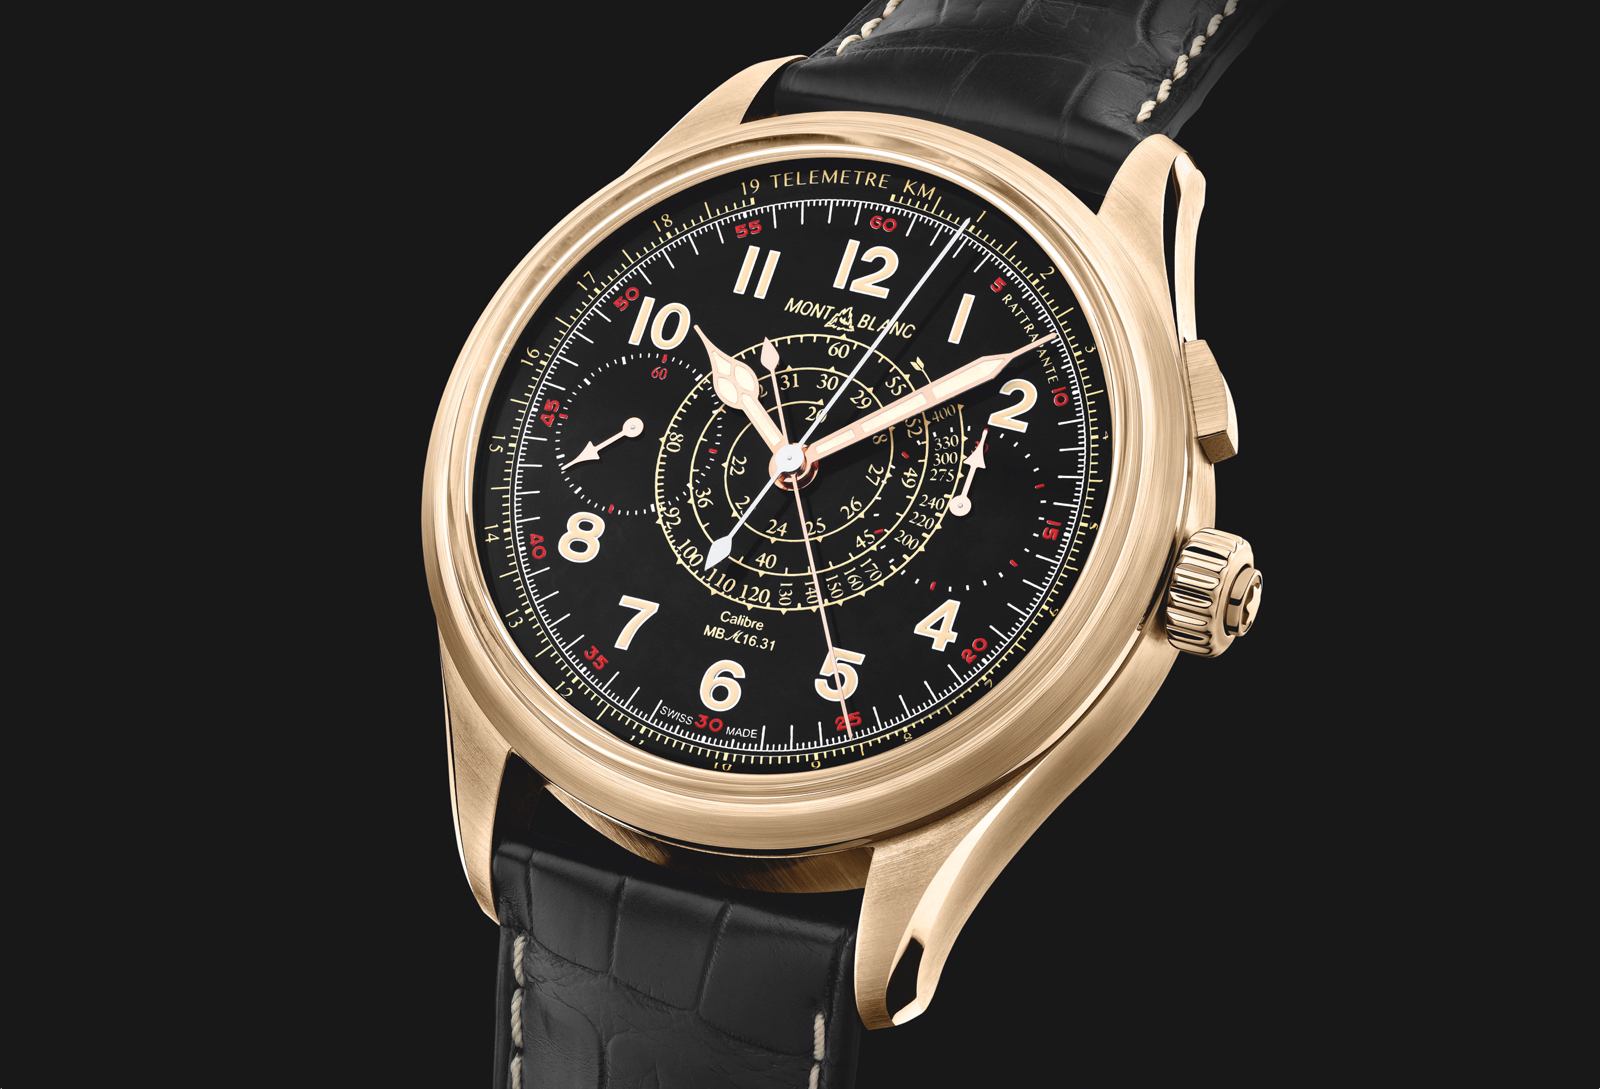 Montblanc 1858 Split Seconds Chronograph SIHH 2019